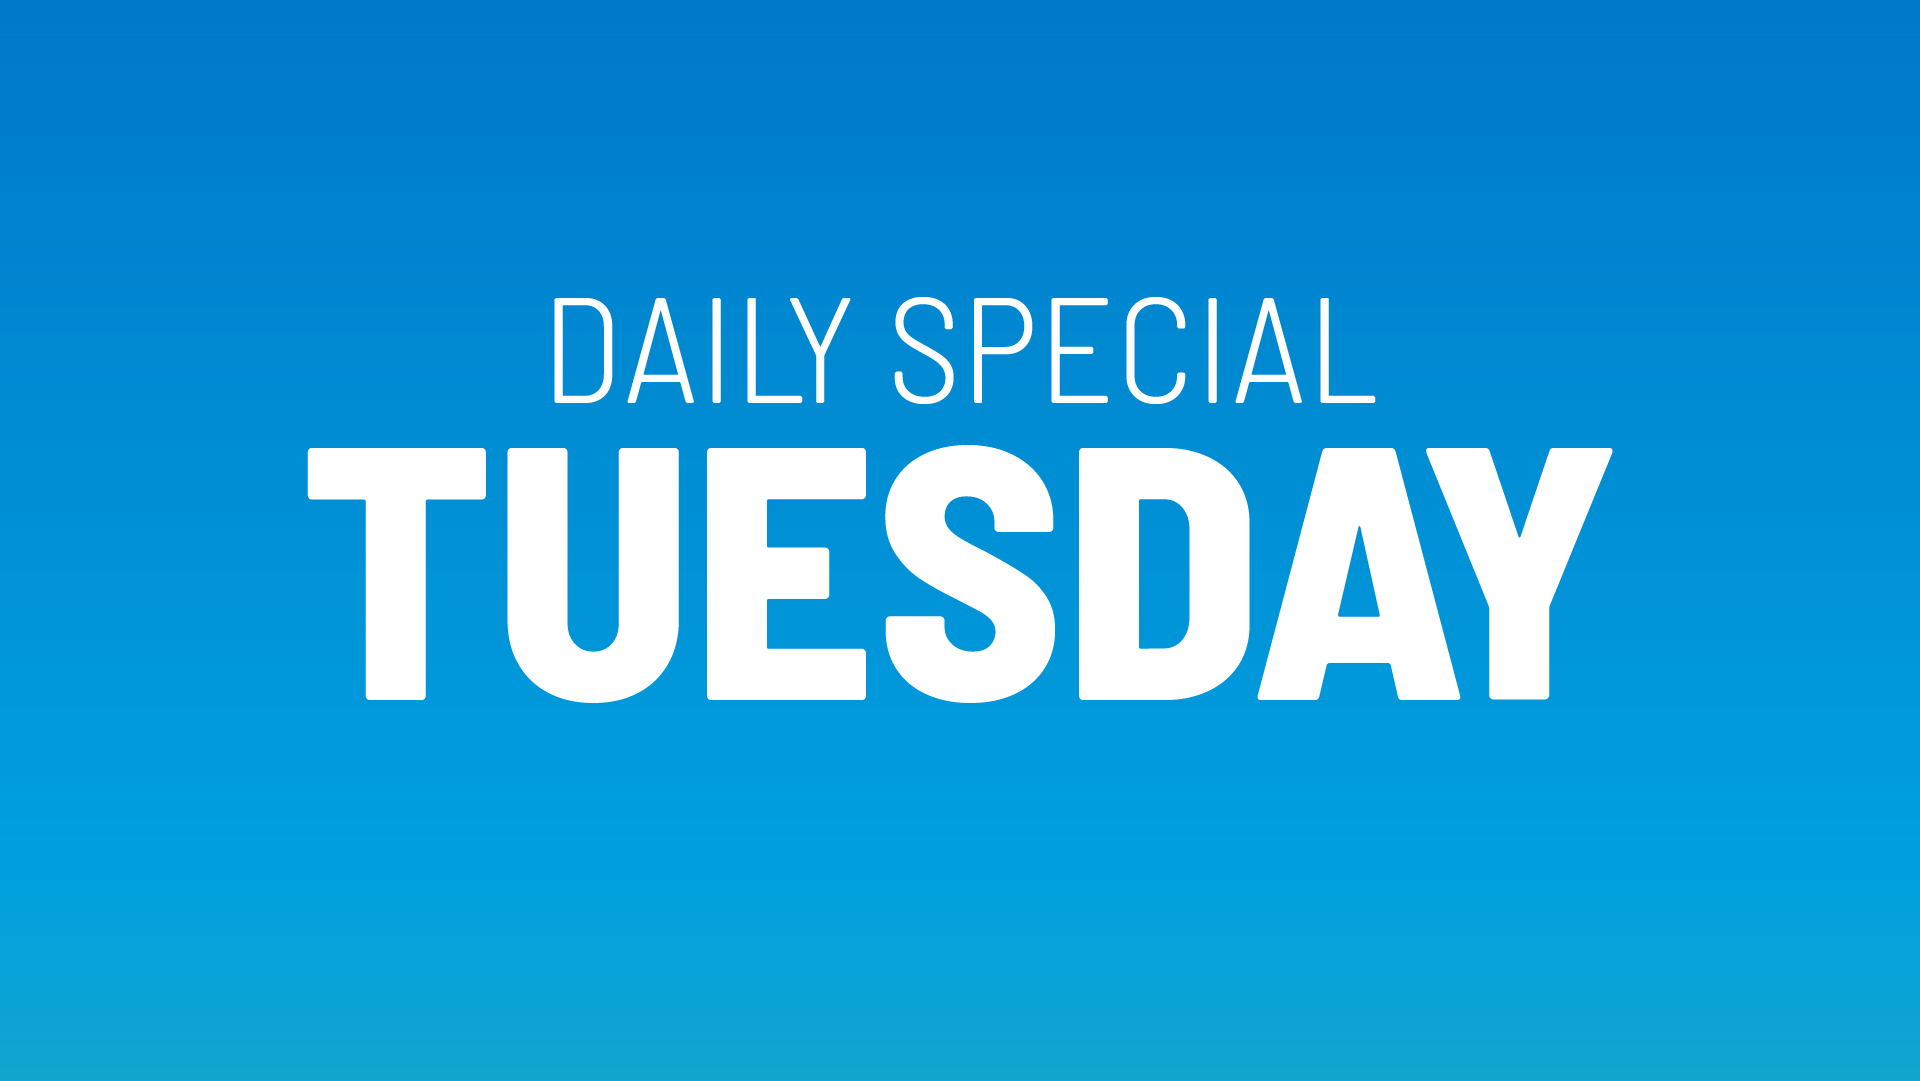 Tuesday's Daily Special